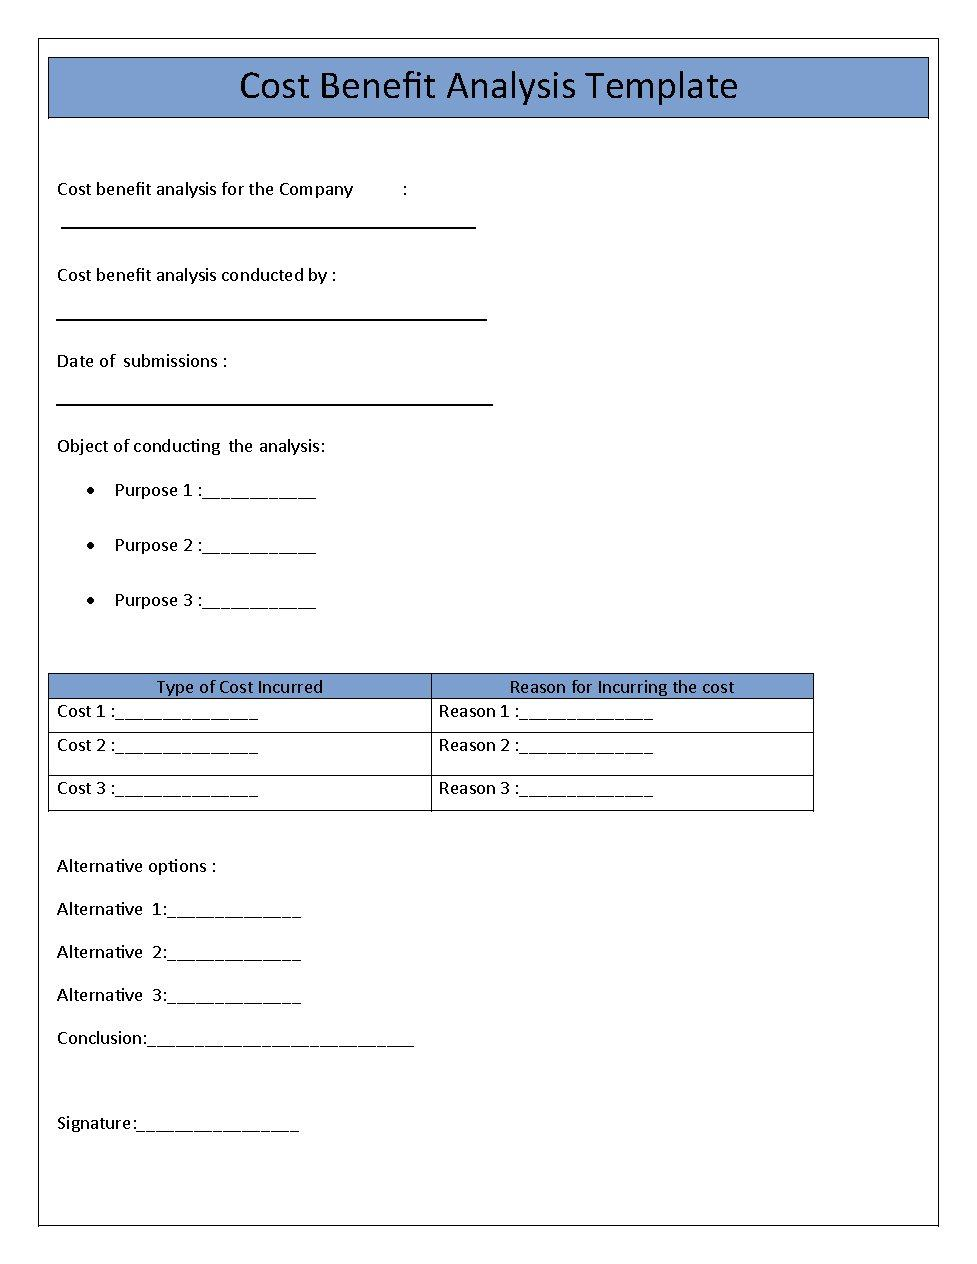 Cost Benefit Analysis Template 04